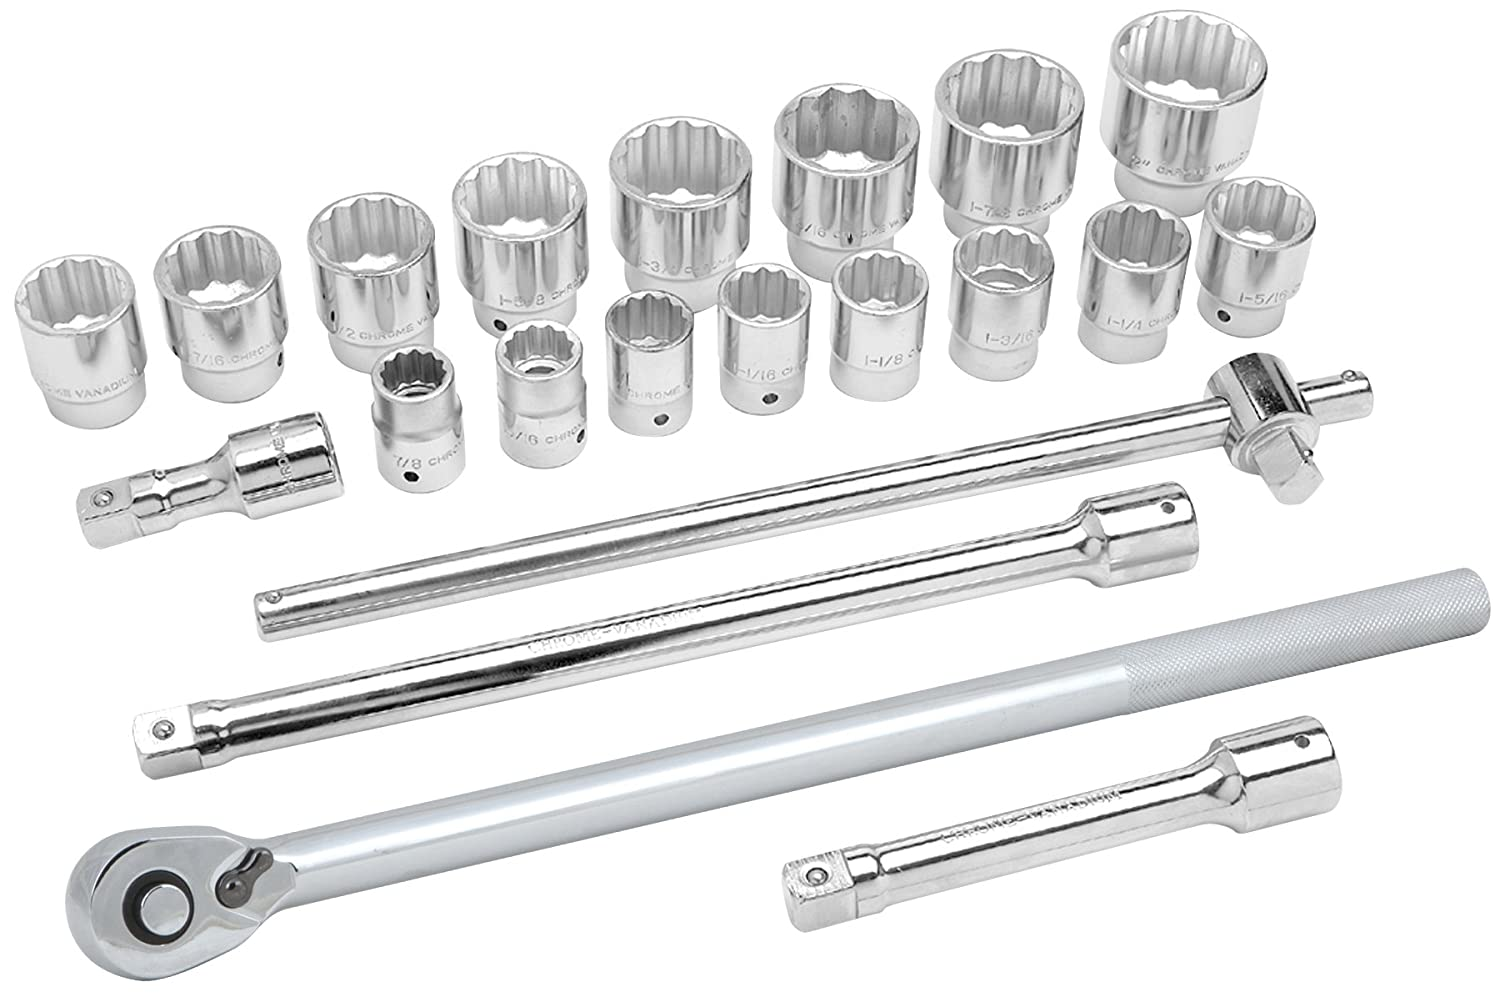 Performance Tool W38302 17 Piece 1/2' Drive SAE and Metric 6 Point Socket Set with Ratchet WILW38302